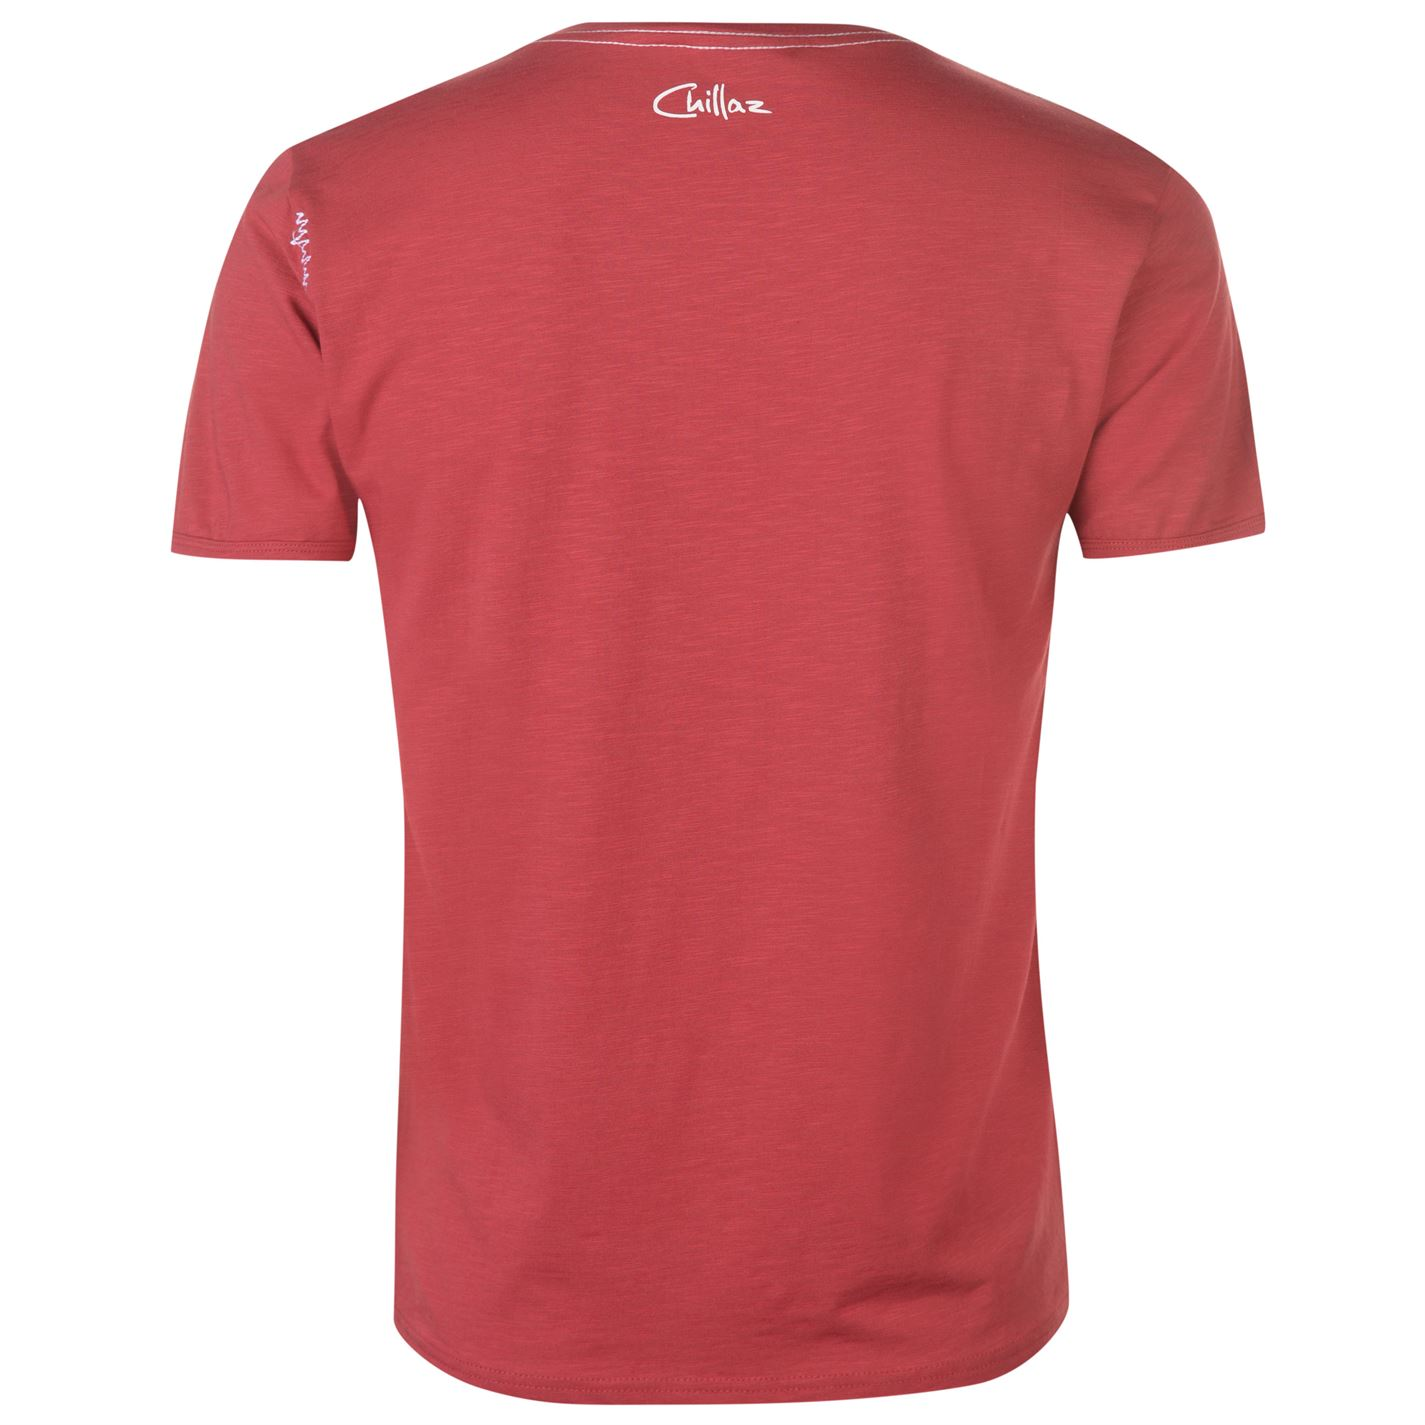 Chillaz Map T Shirt Mens Gents Short Sleeve Performance Tee Top Crew Neck Stamp